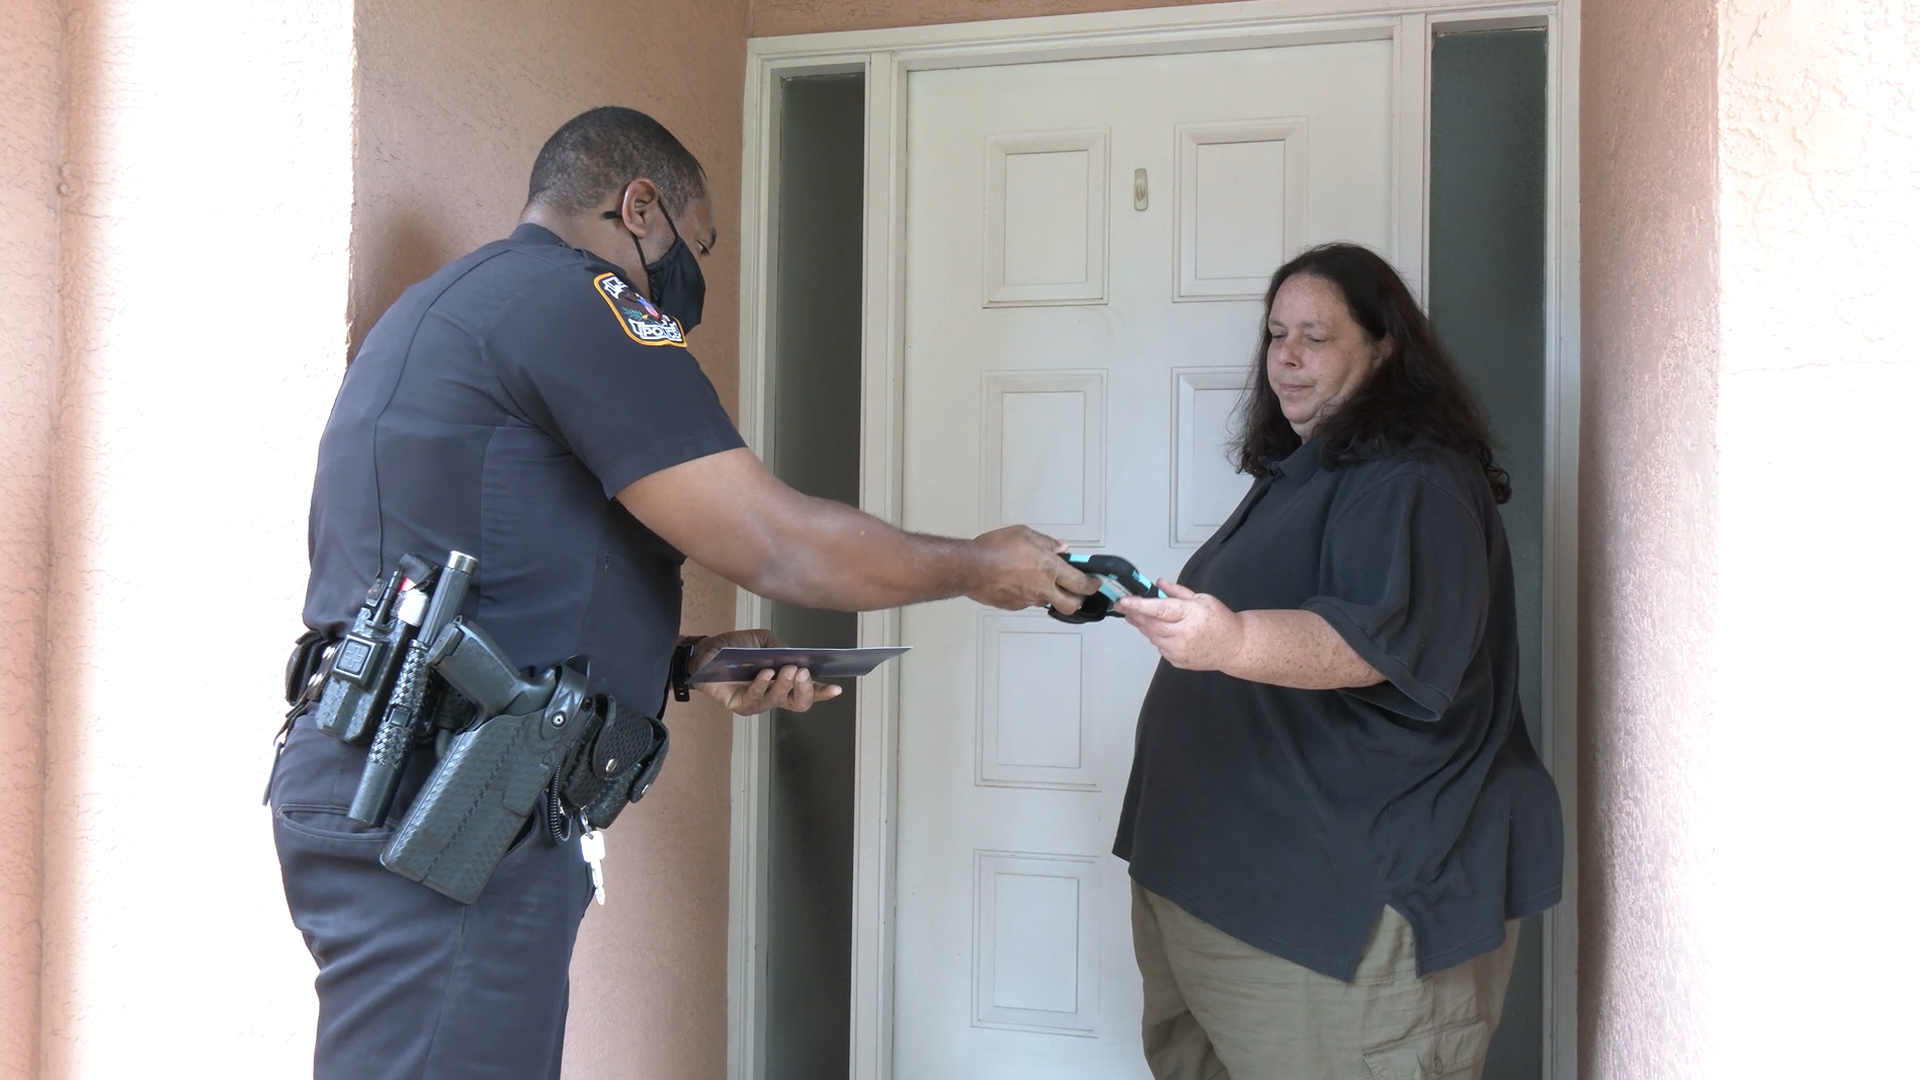 A police officer hands a tablet to a woman